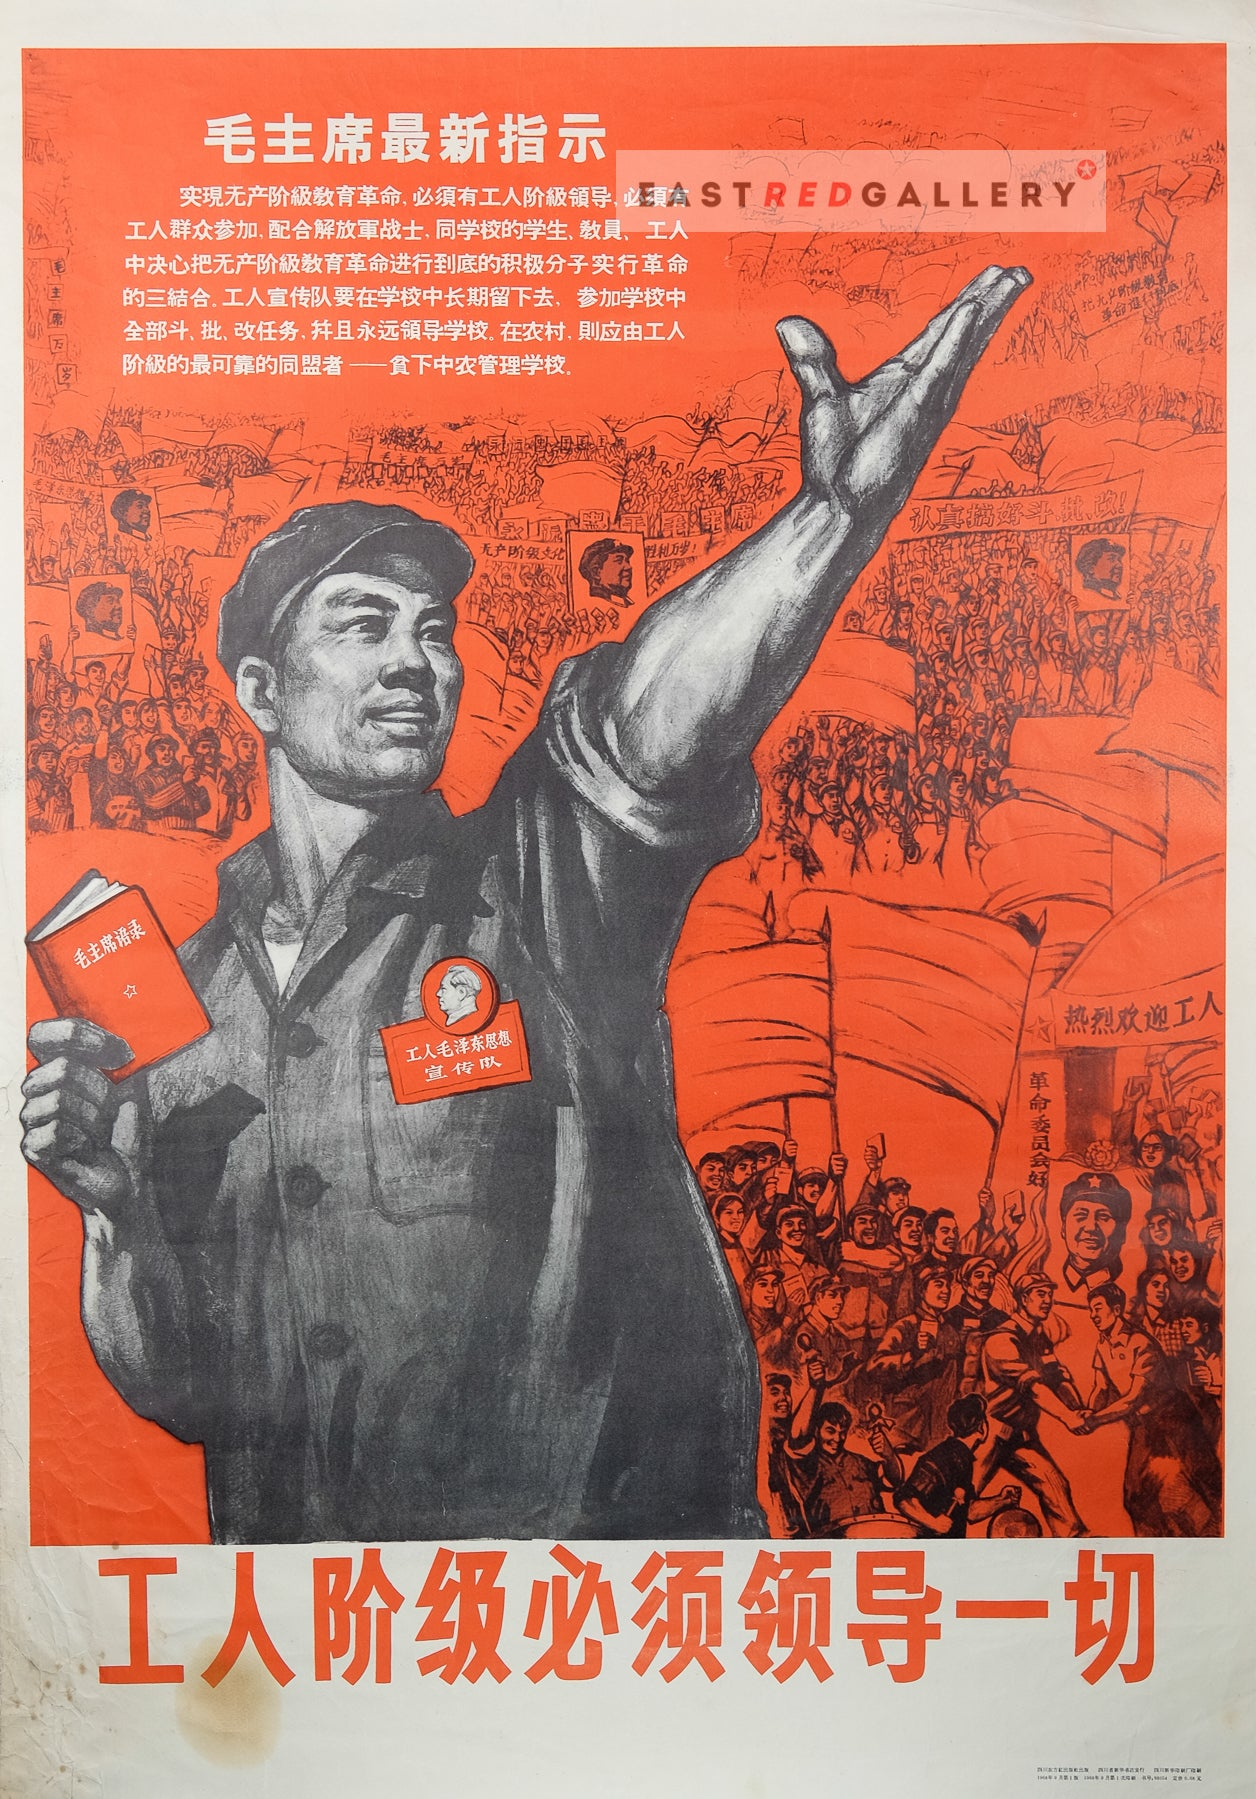 Image of original Chinese propaganda poster The working classes must lead everything